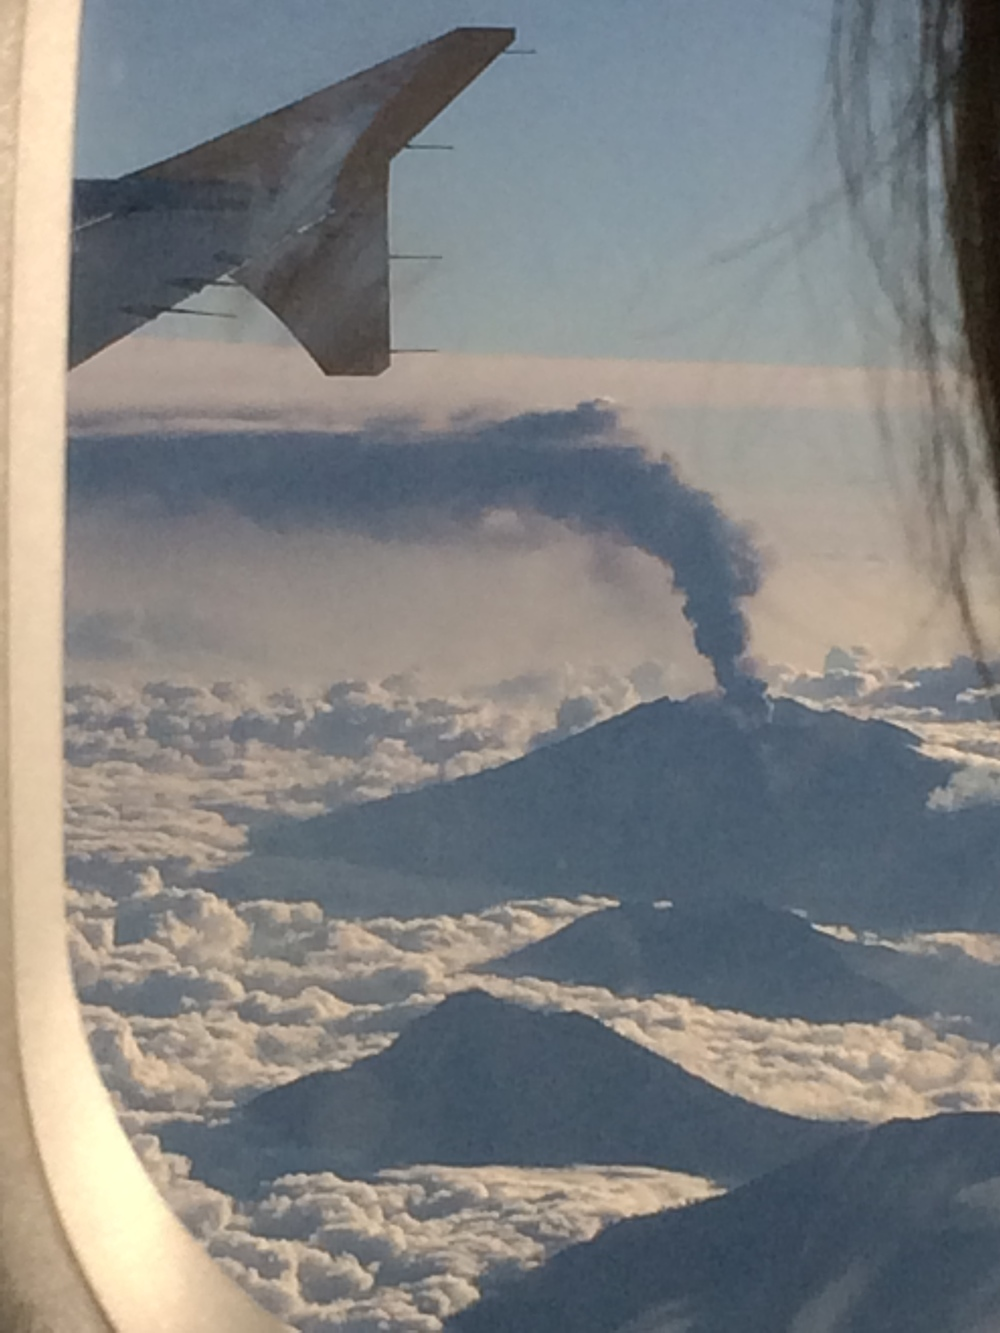 Look at that volcano!!!